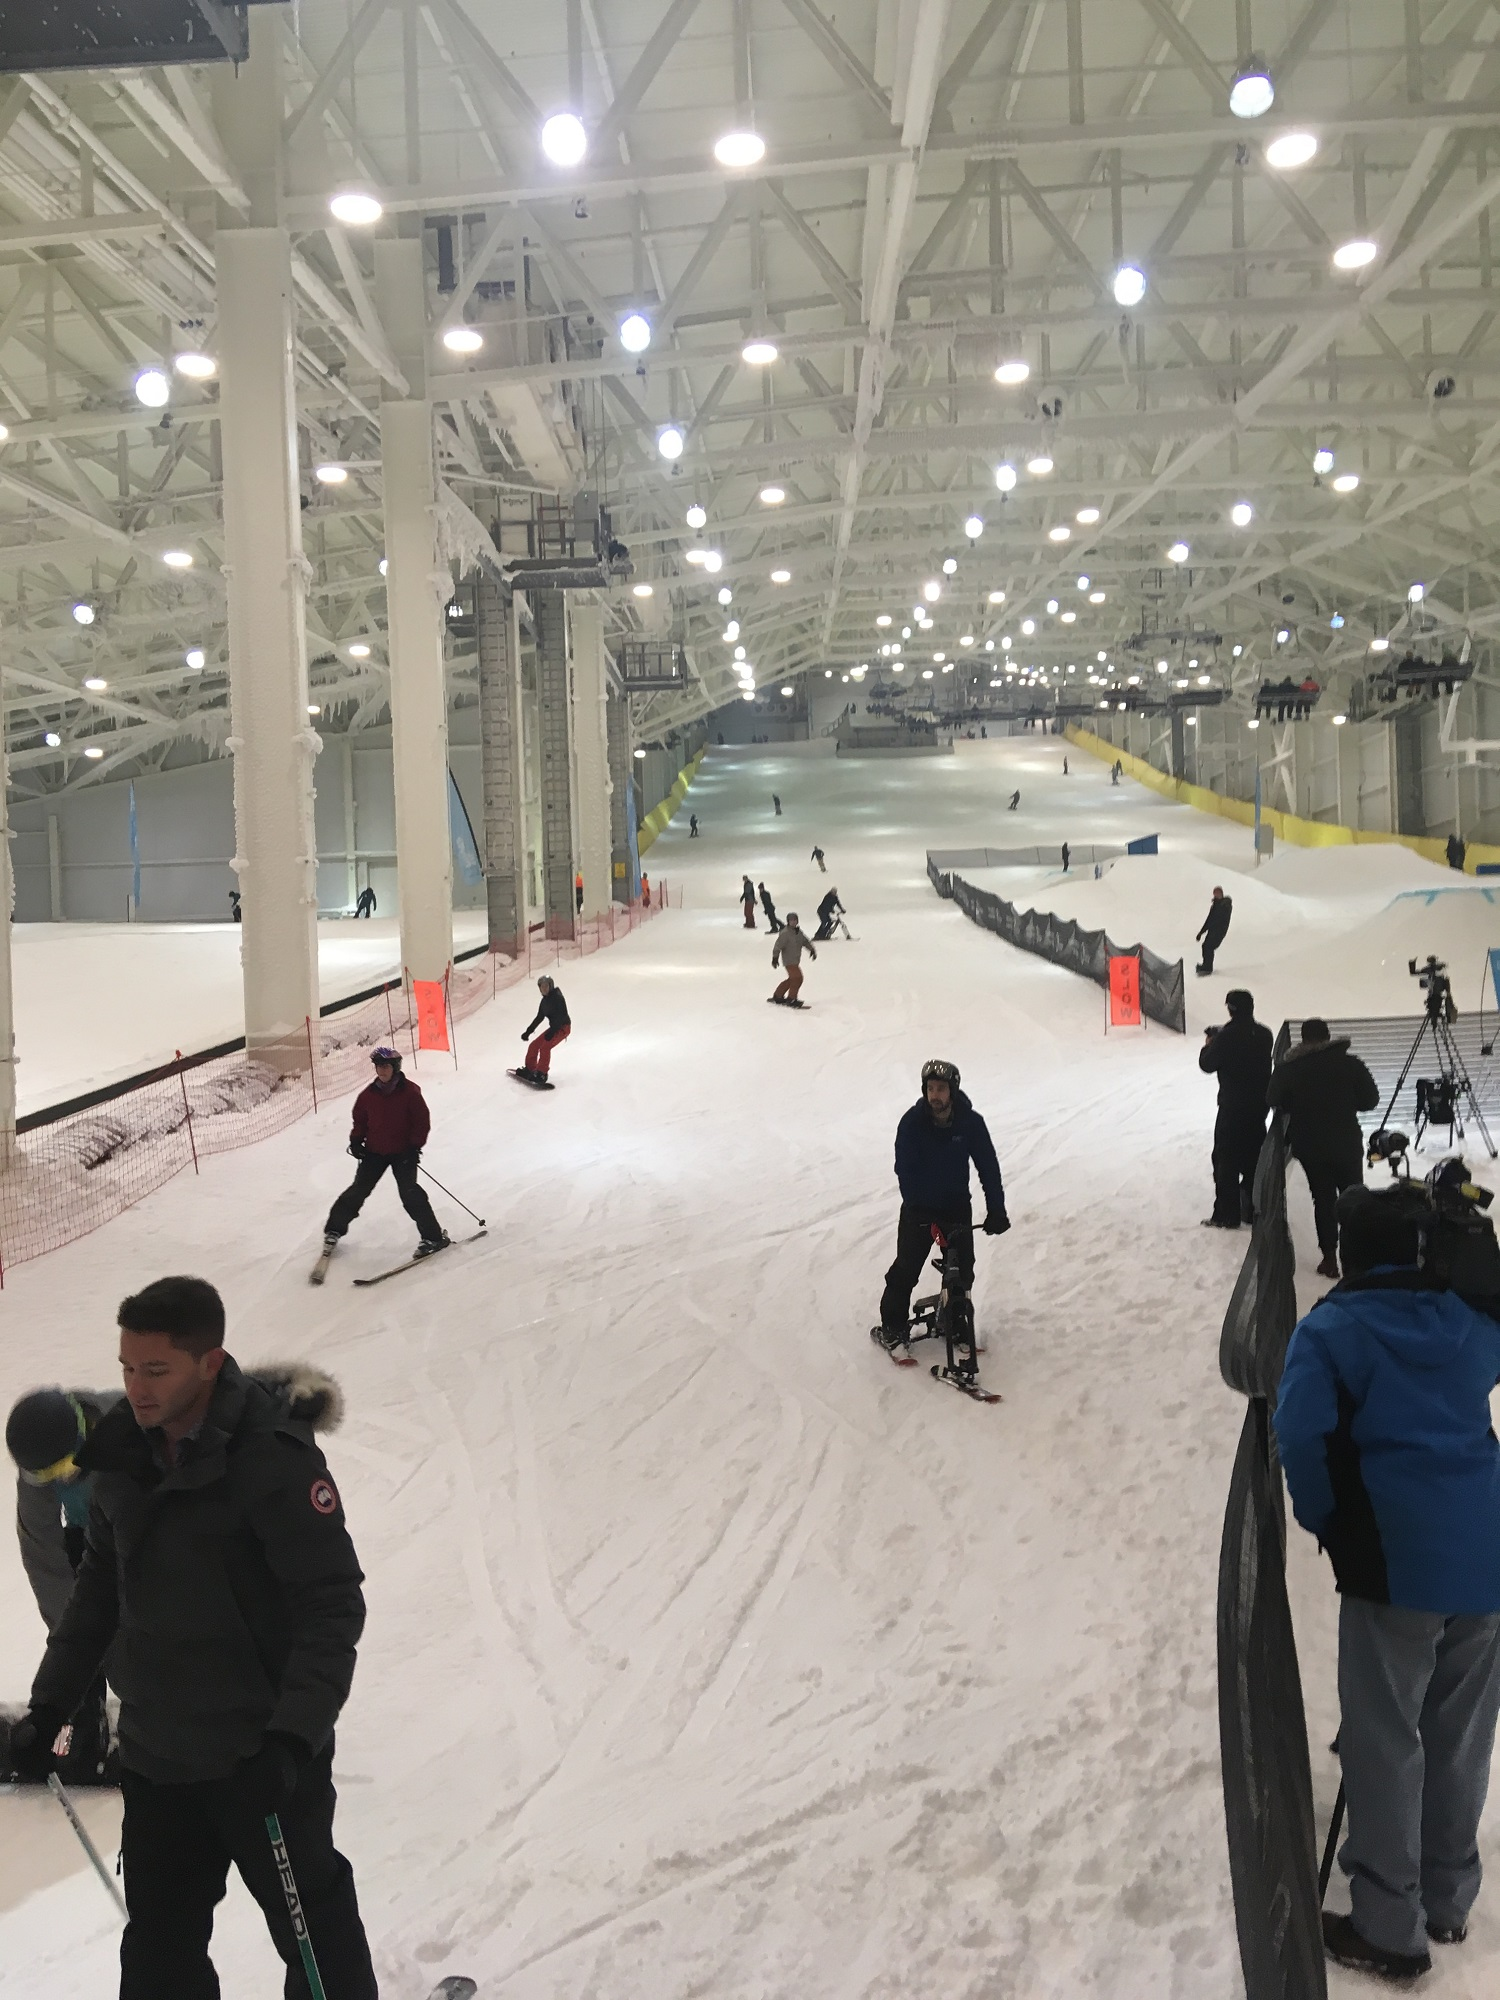 Big SNOW at American Dream in the Meadowlands.